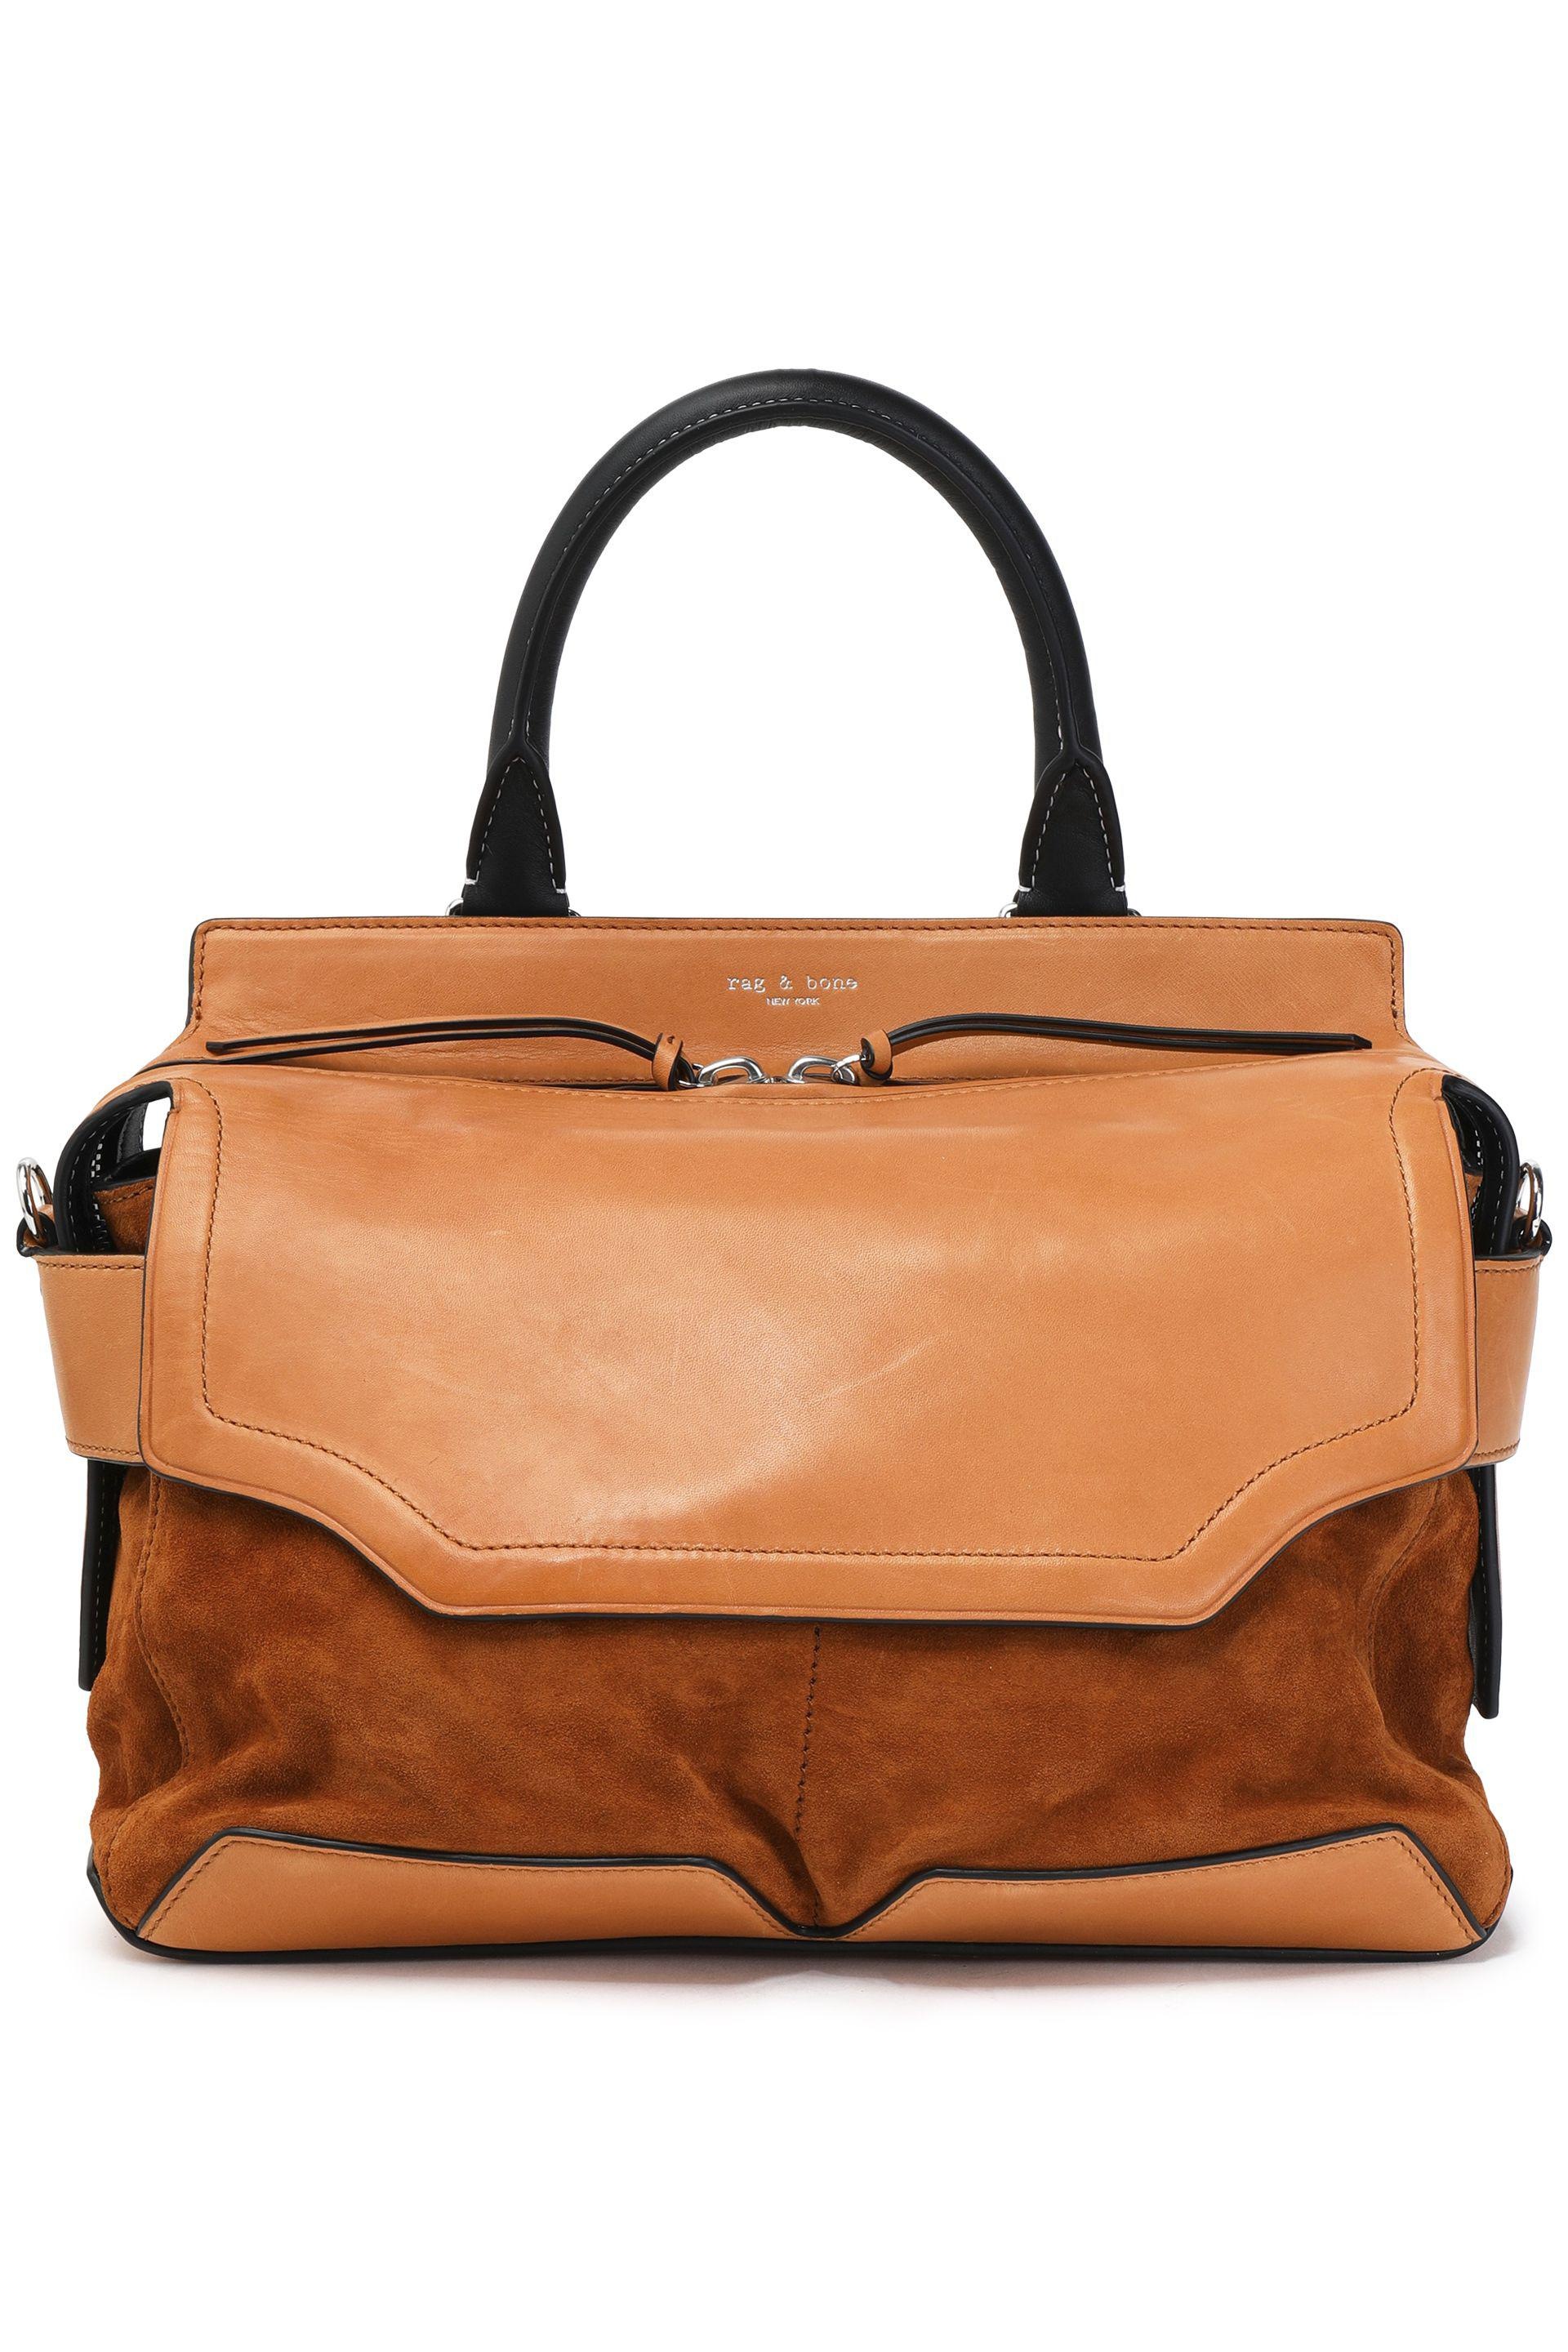 Lyst - Rag   Bone Shoulder Bag Light Brown in Brown c354316254401